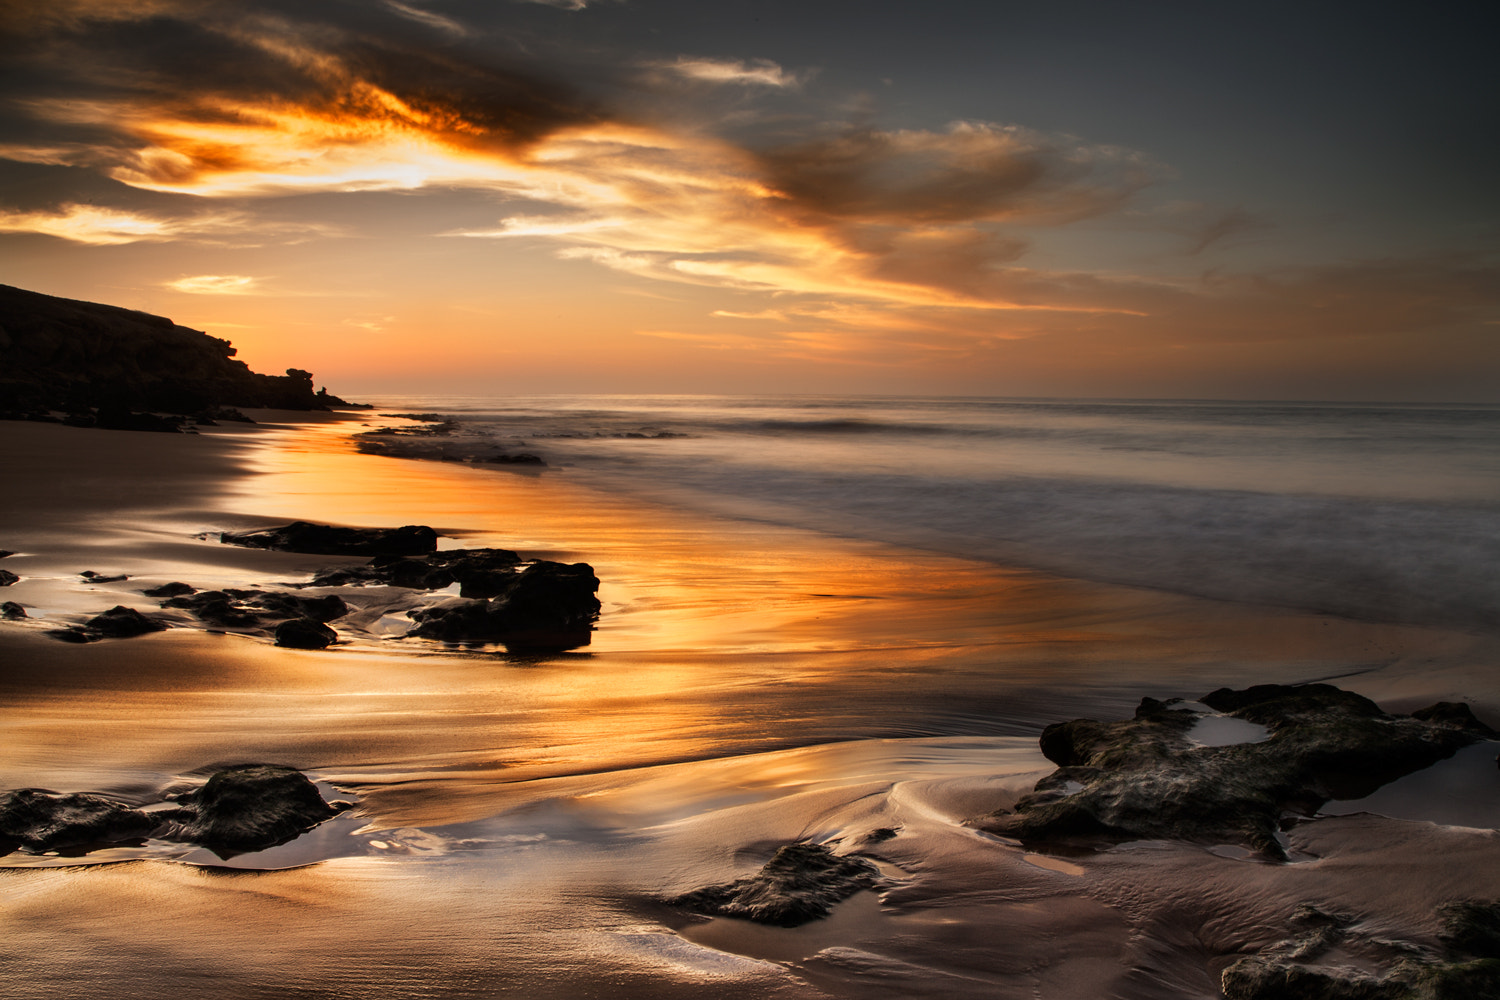 Photograph GOLDEN HOUR by André Silva Pinto on 500px